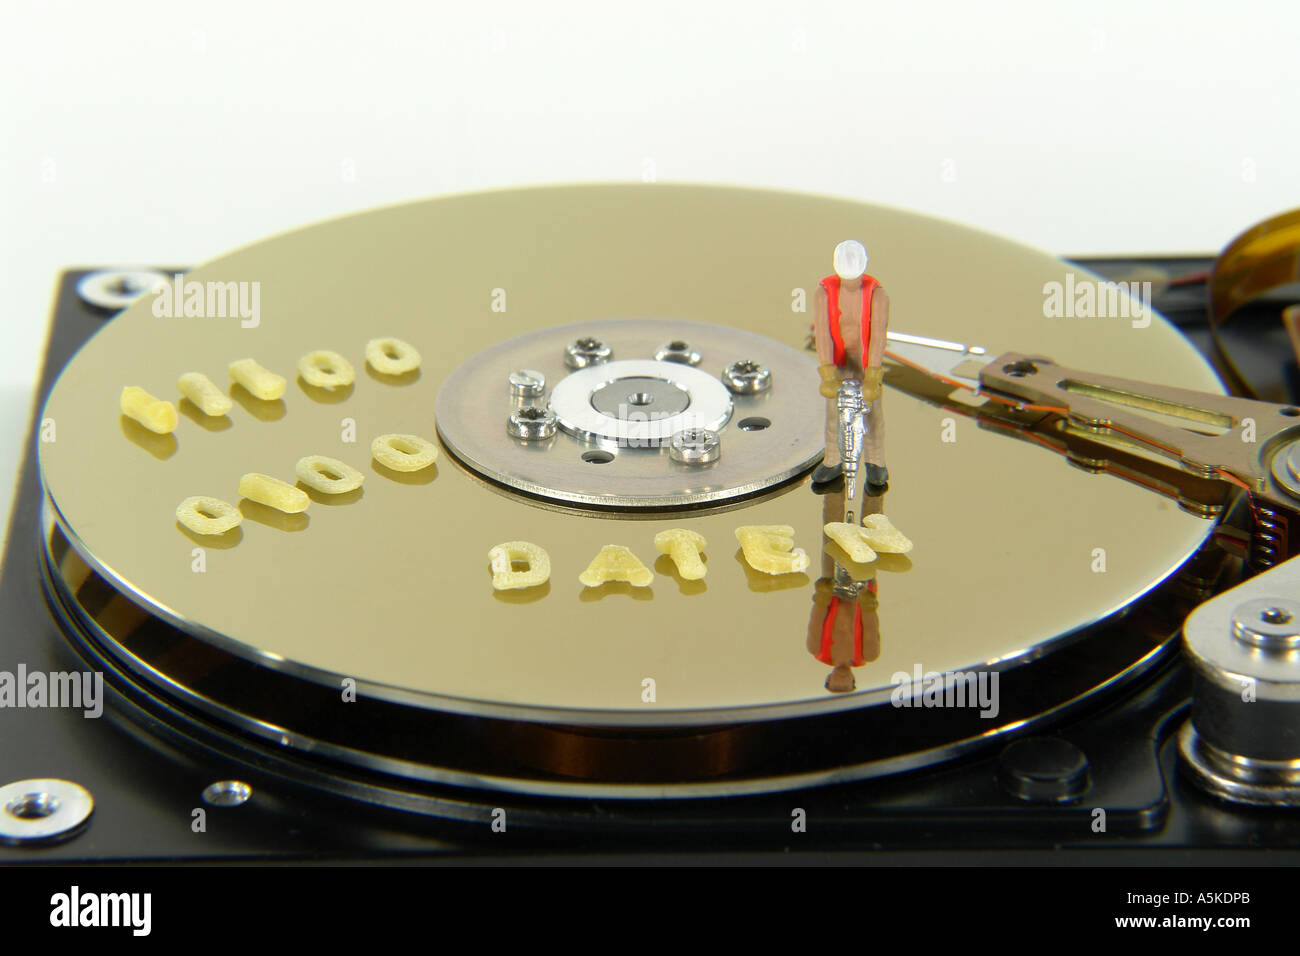 Symbolic Image data on a Harddisc (DATEN) - Stock Image